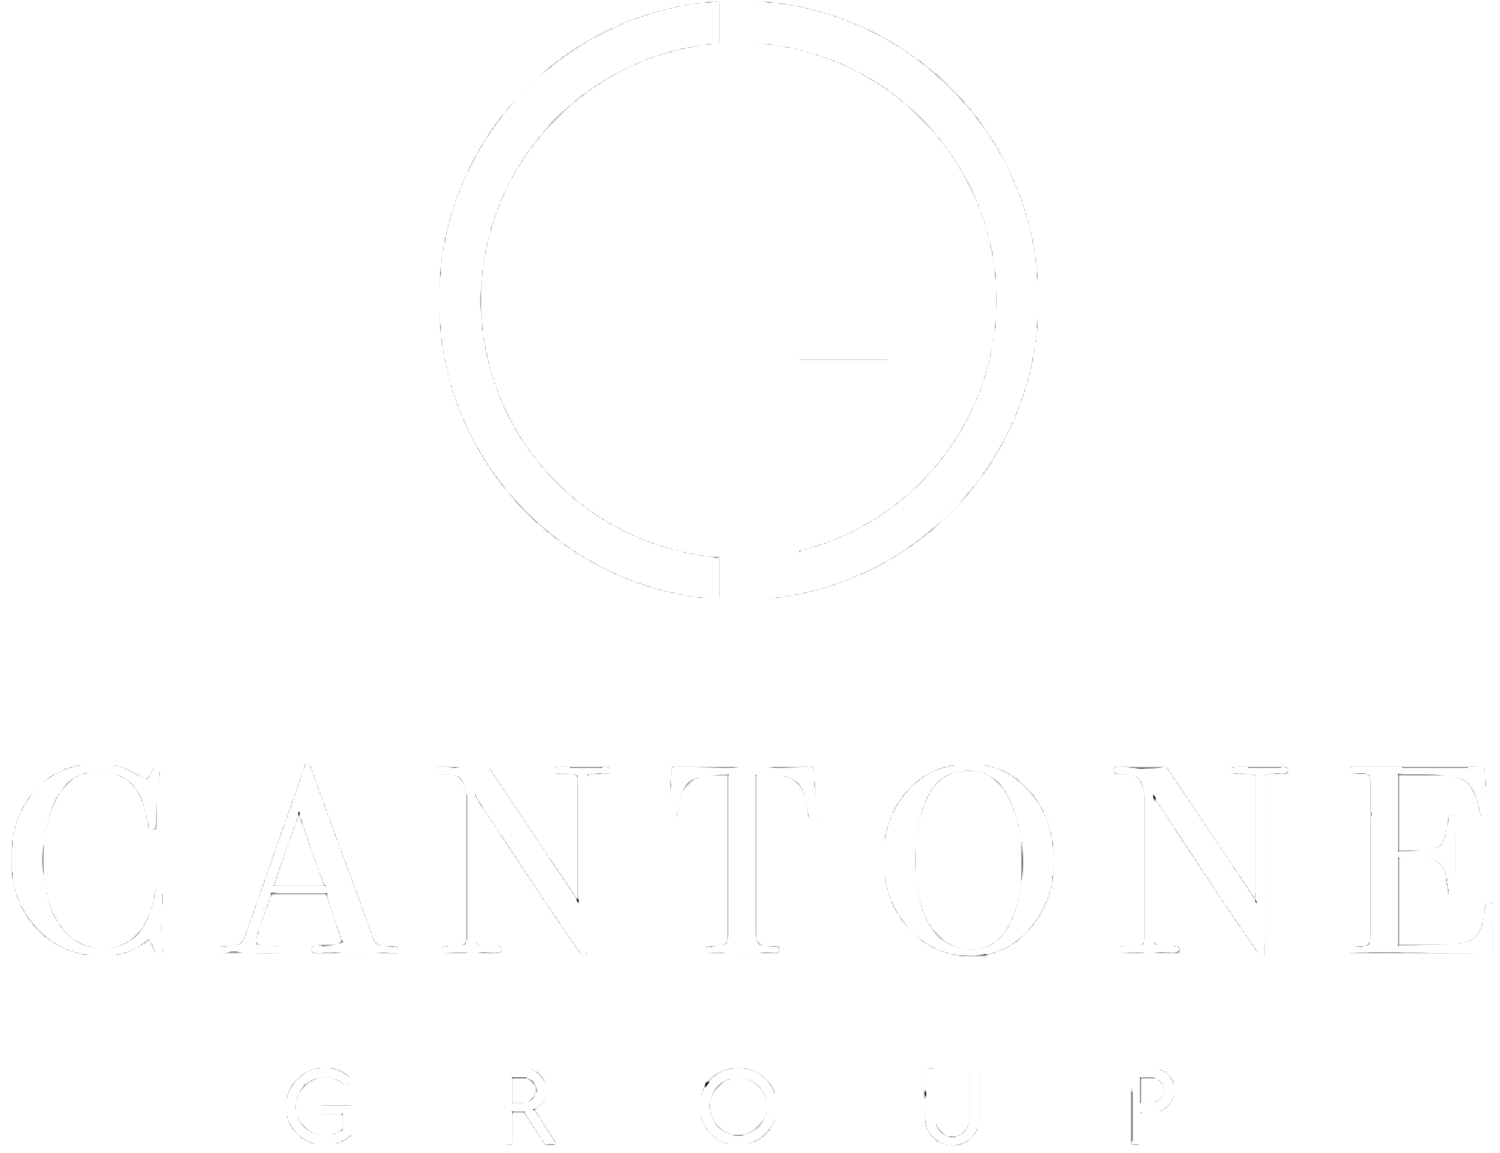 Cantone Group